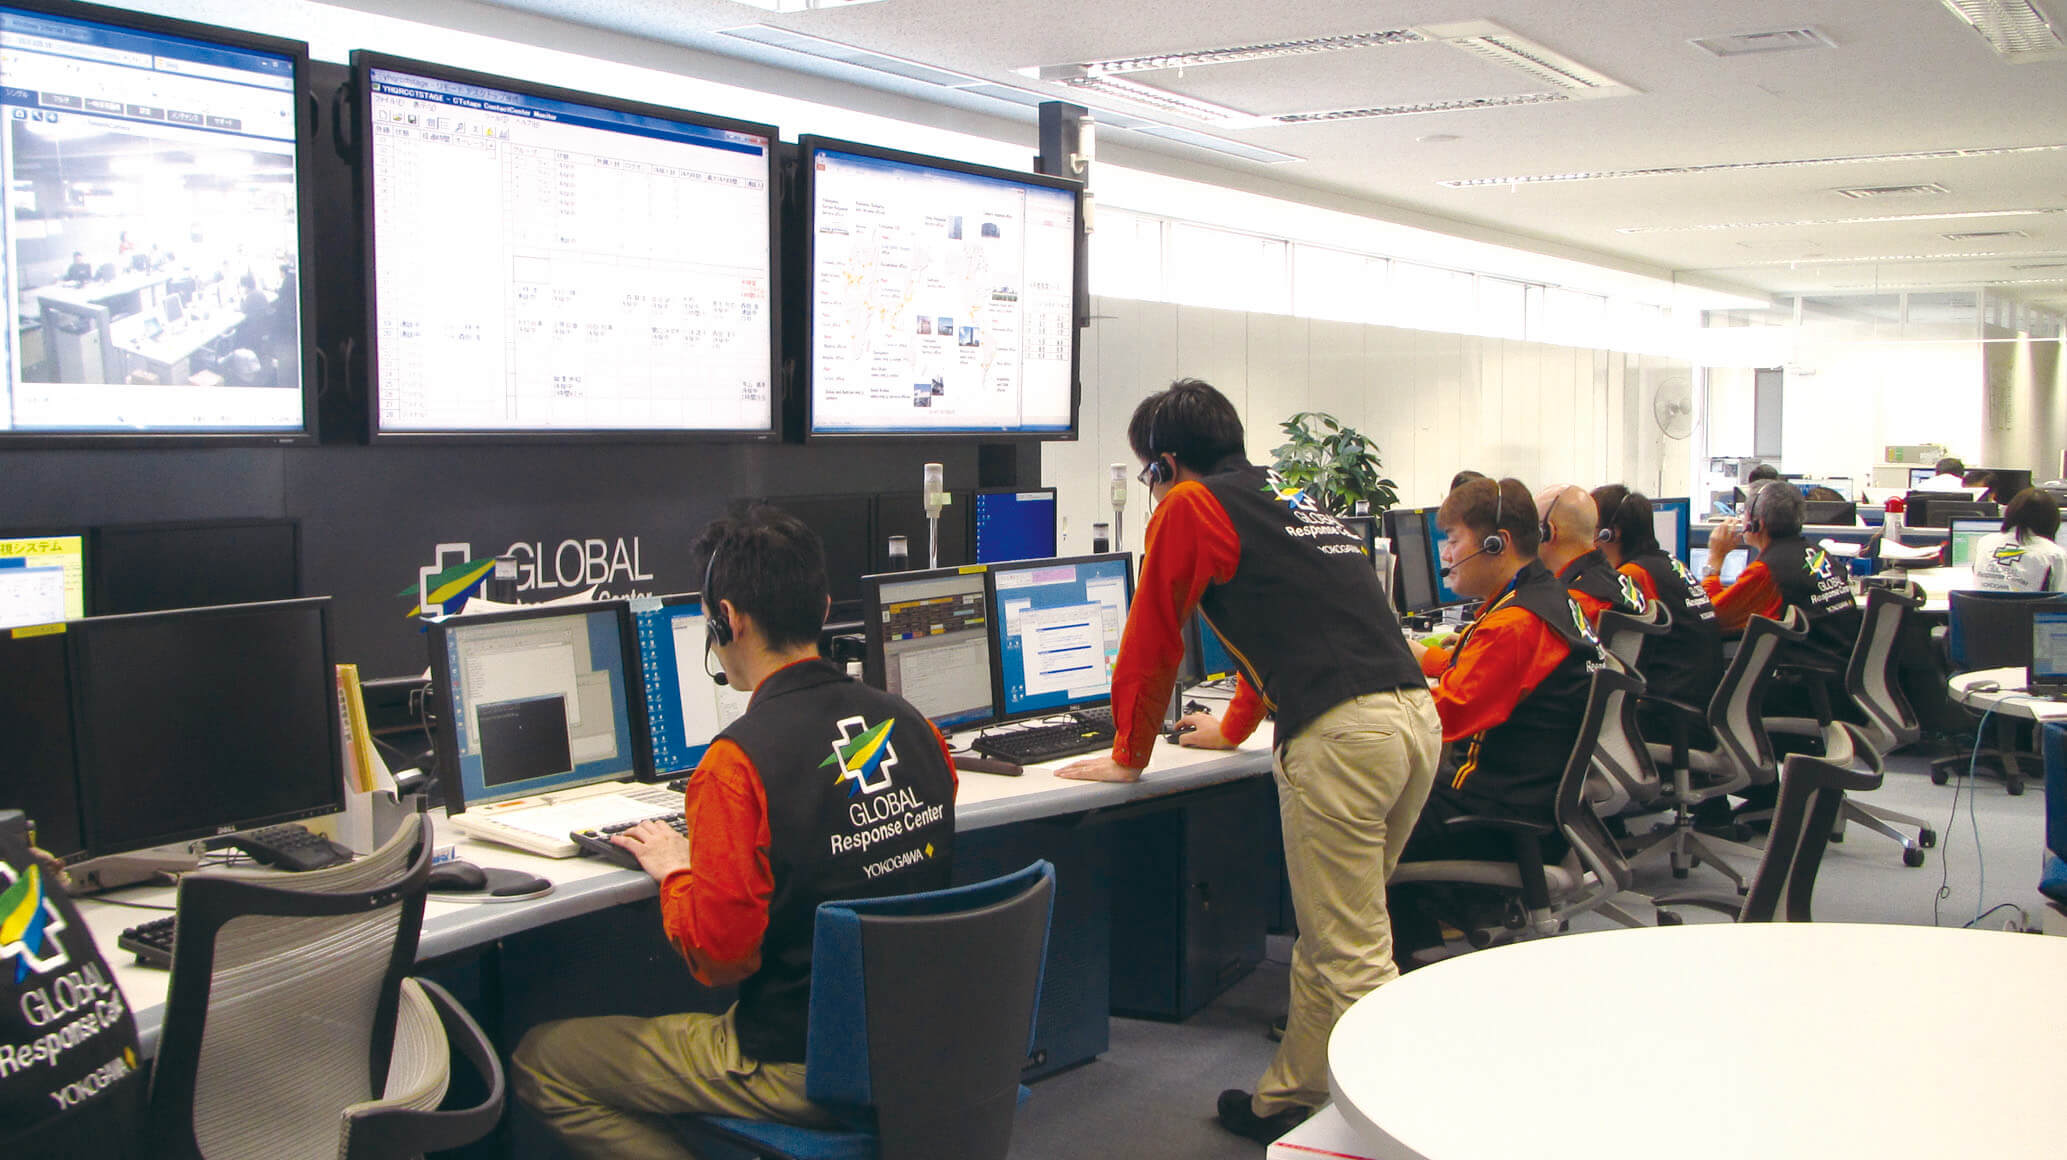 Global Response Center (GRC)